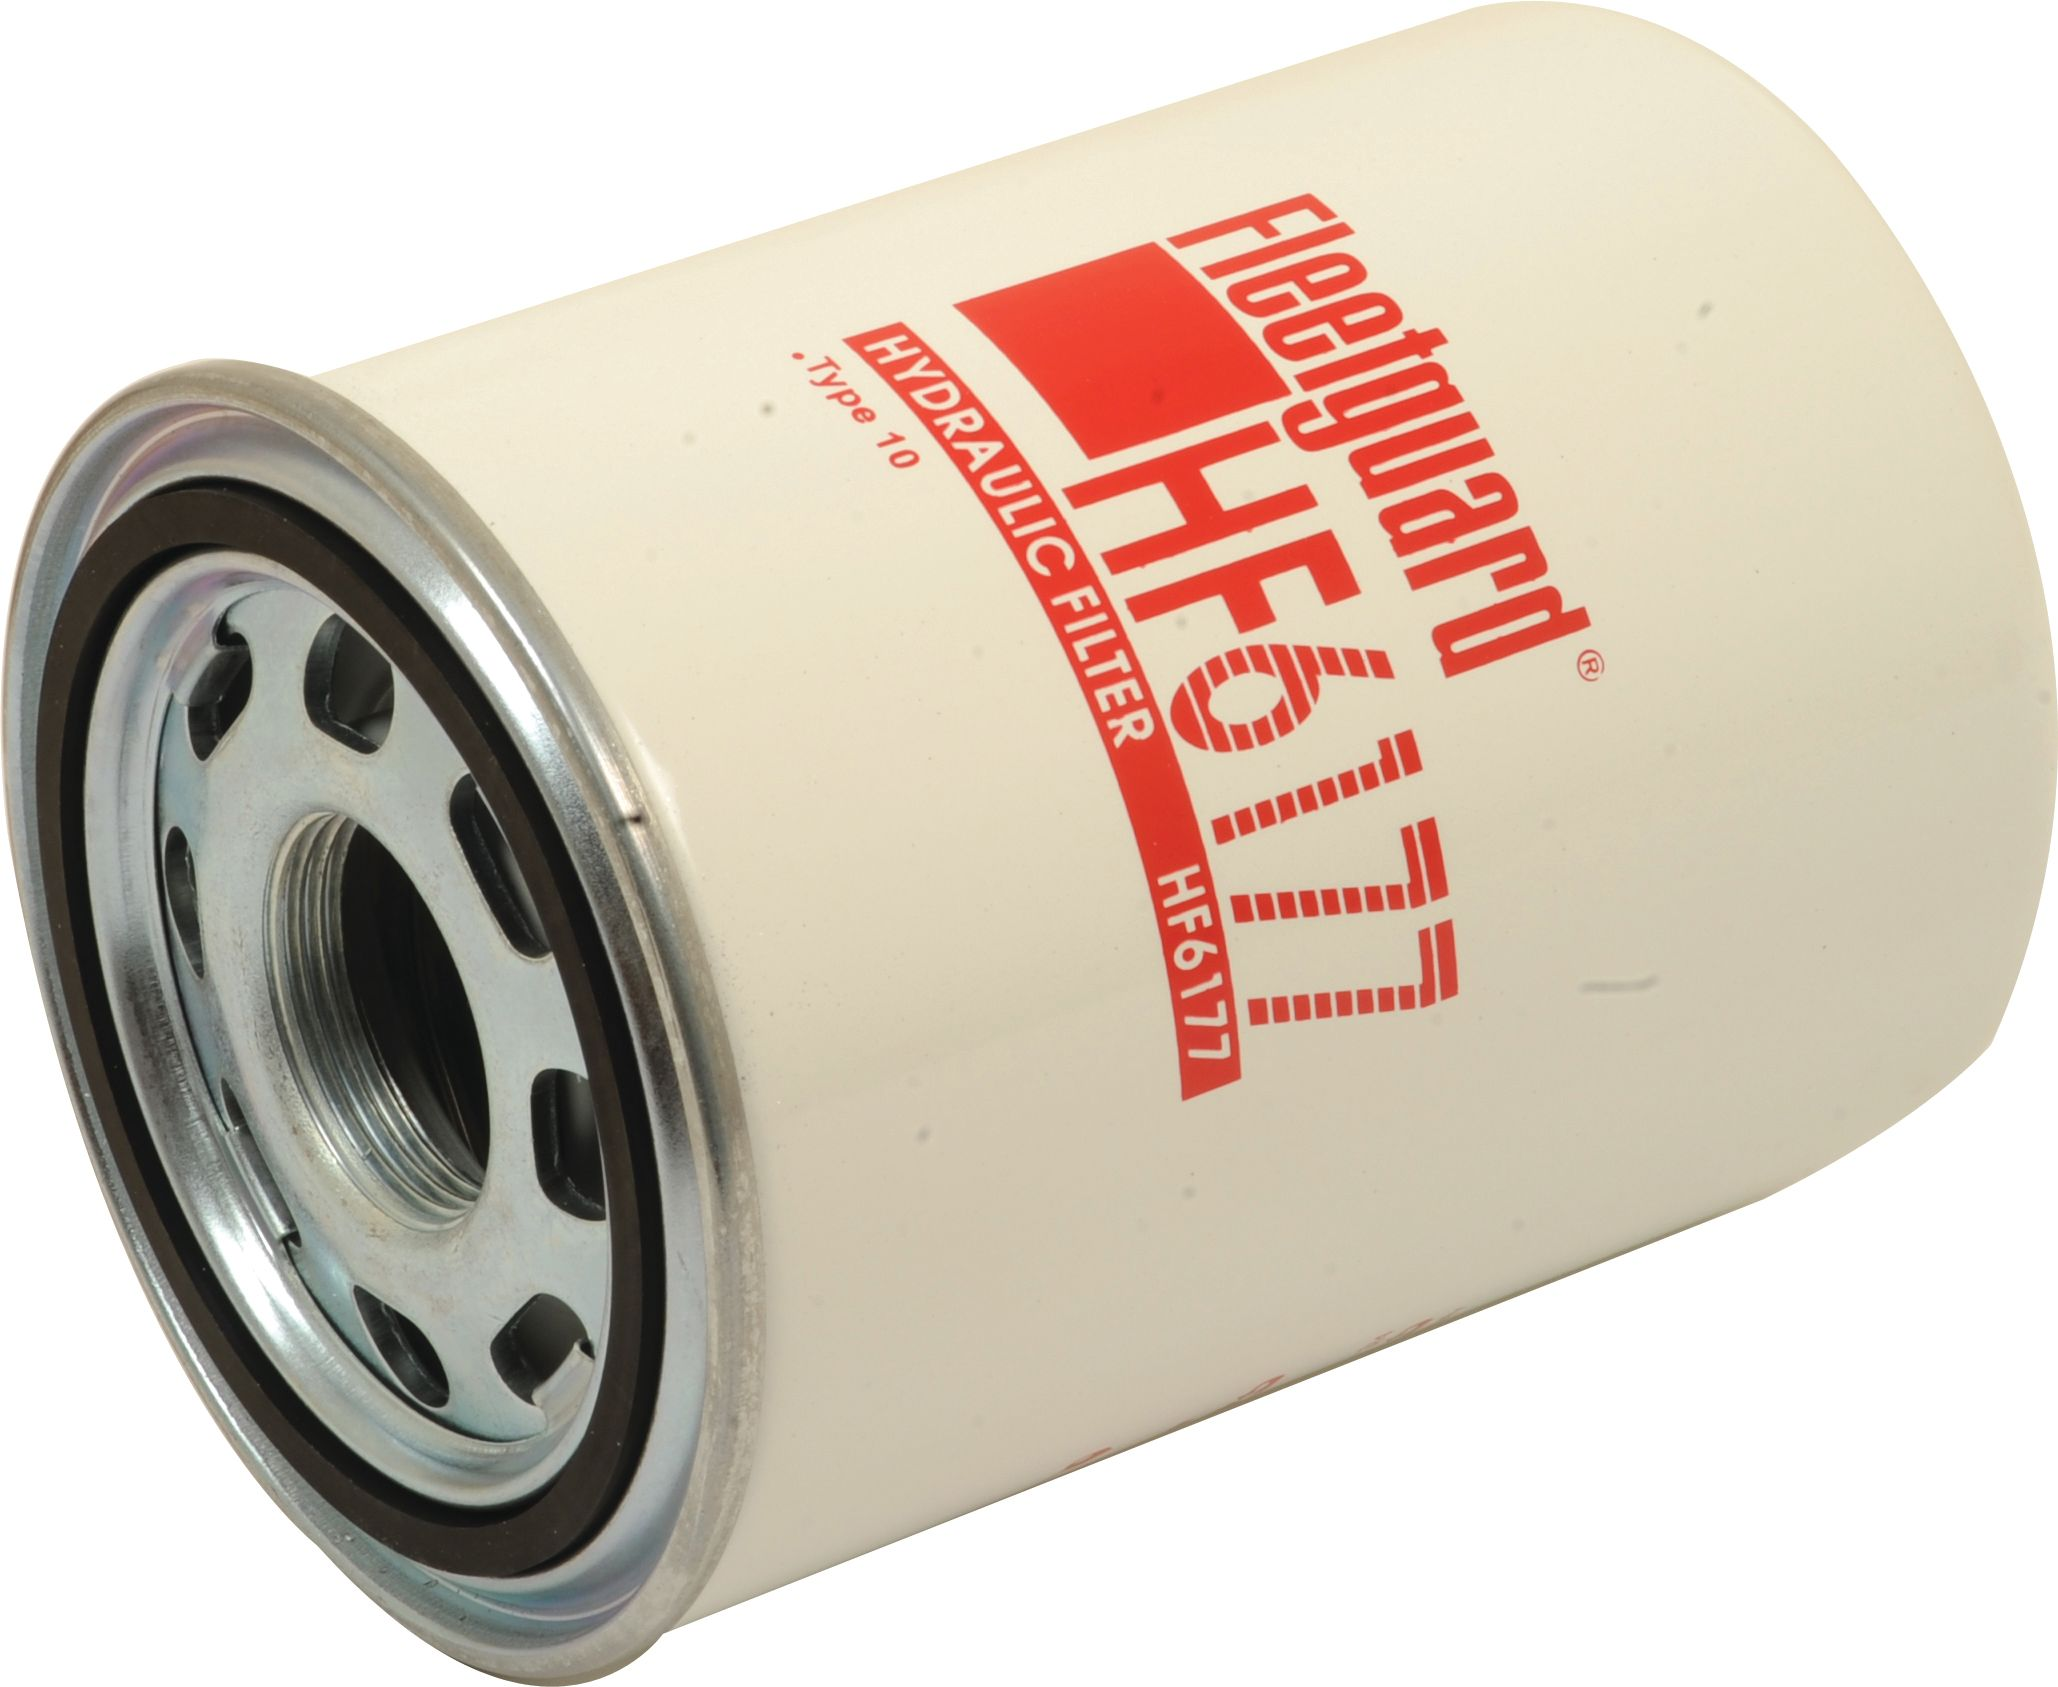 MCCONNEL HYDRAULIC FILTER HF6177 76862